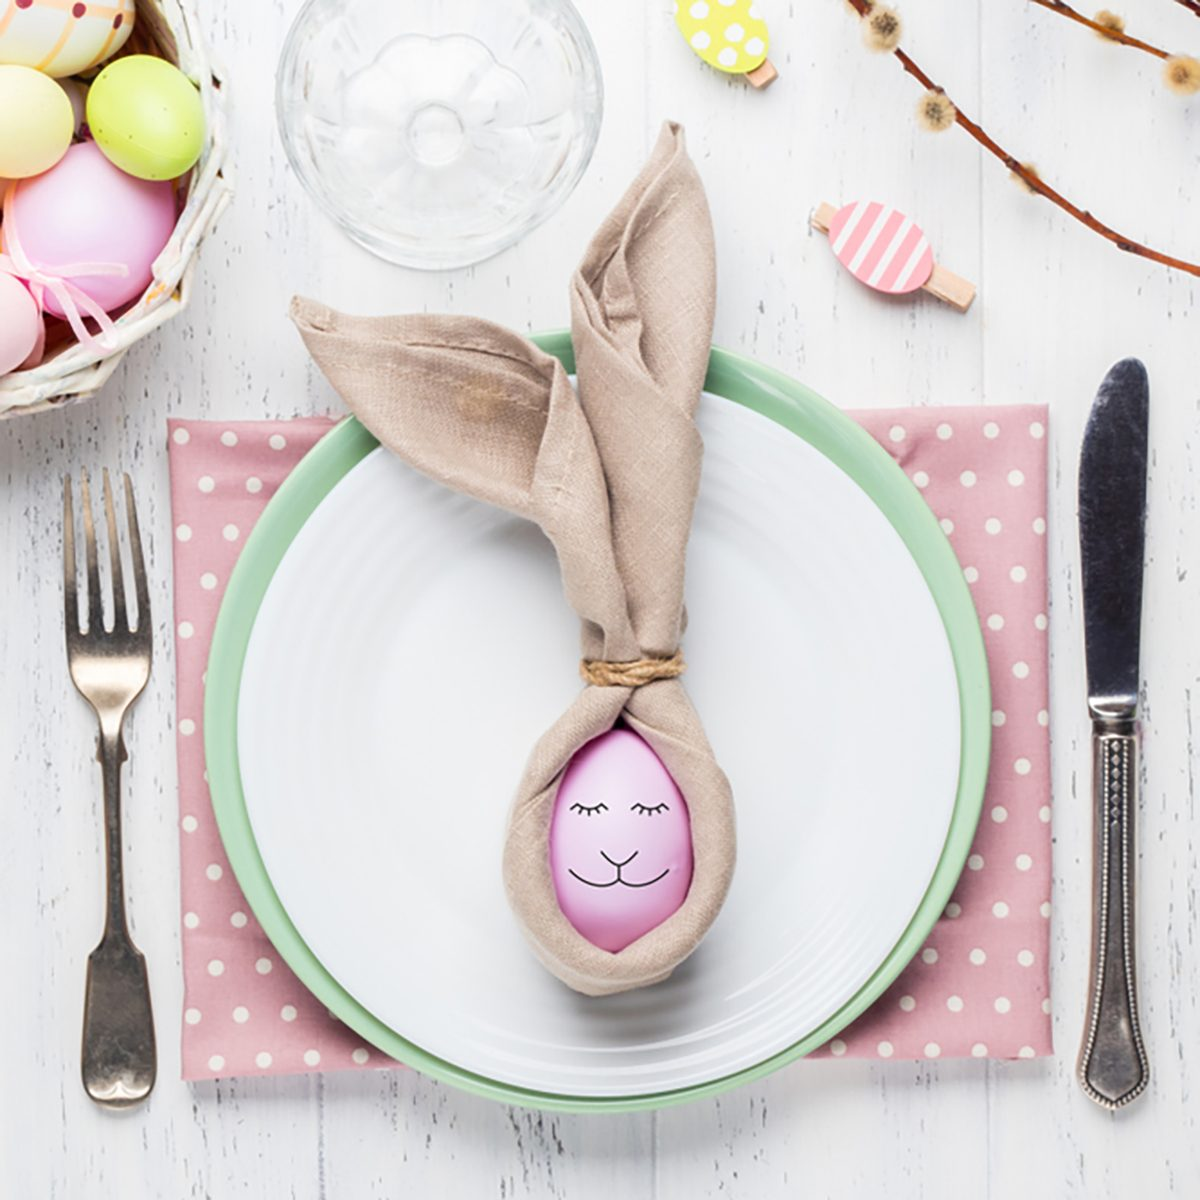 Beautiful festive Easter table setting with napkin Easter Bunny